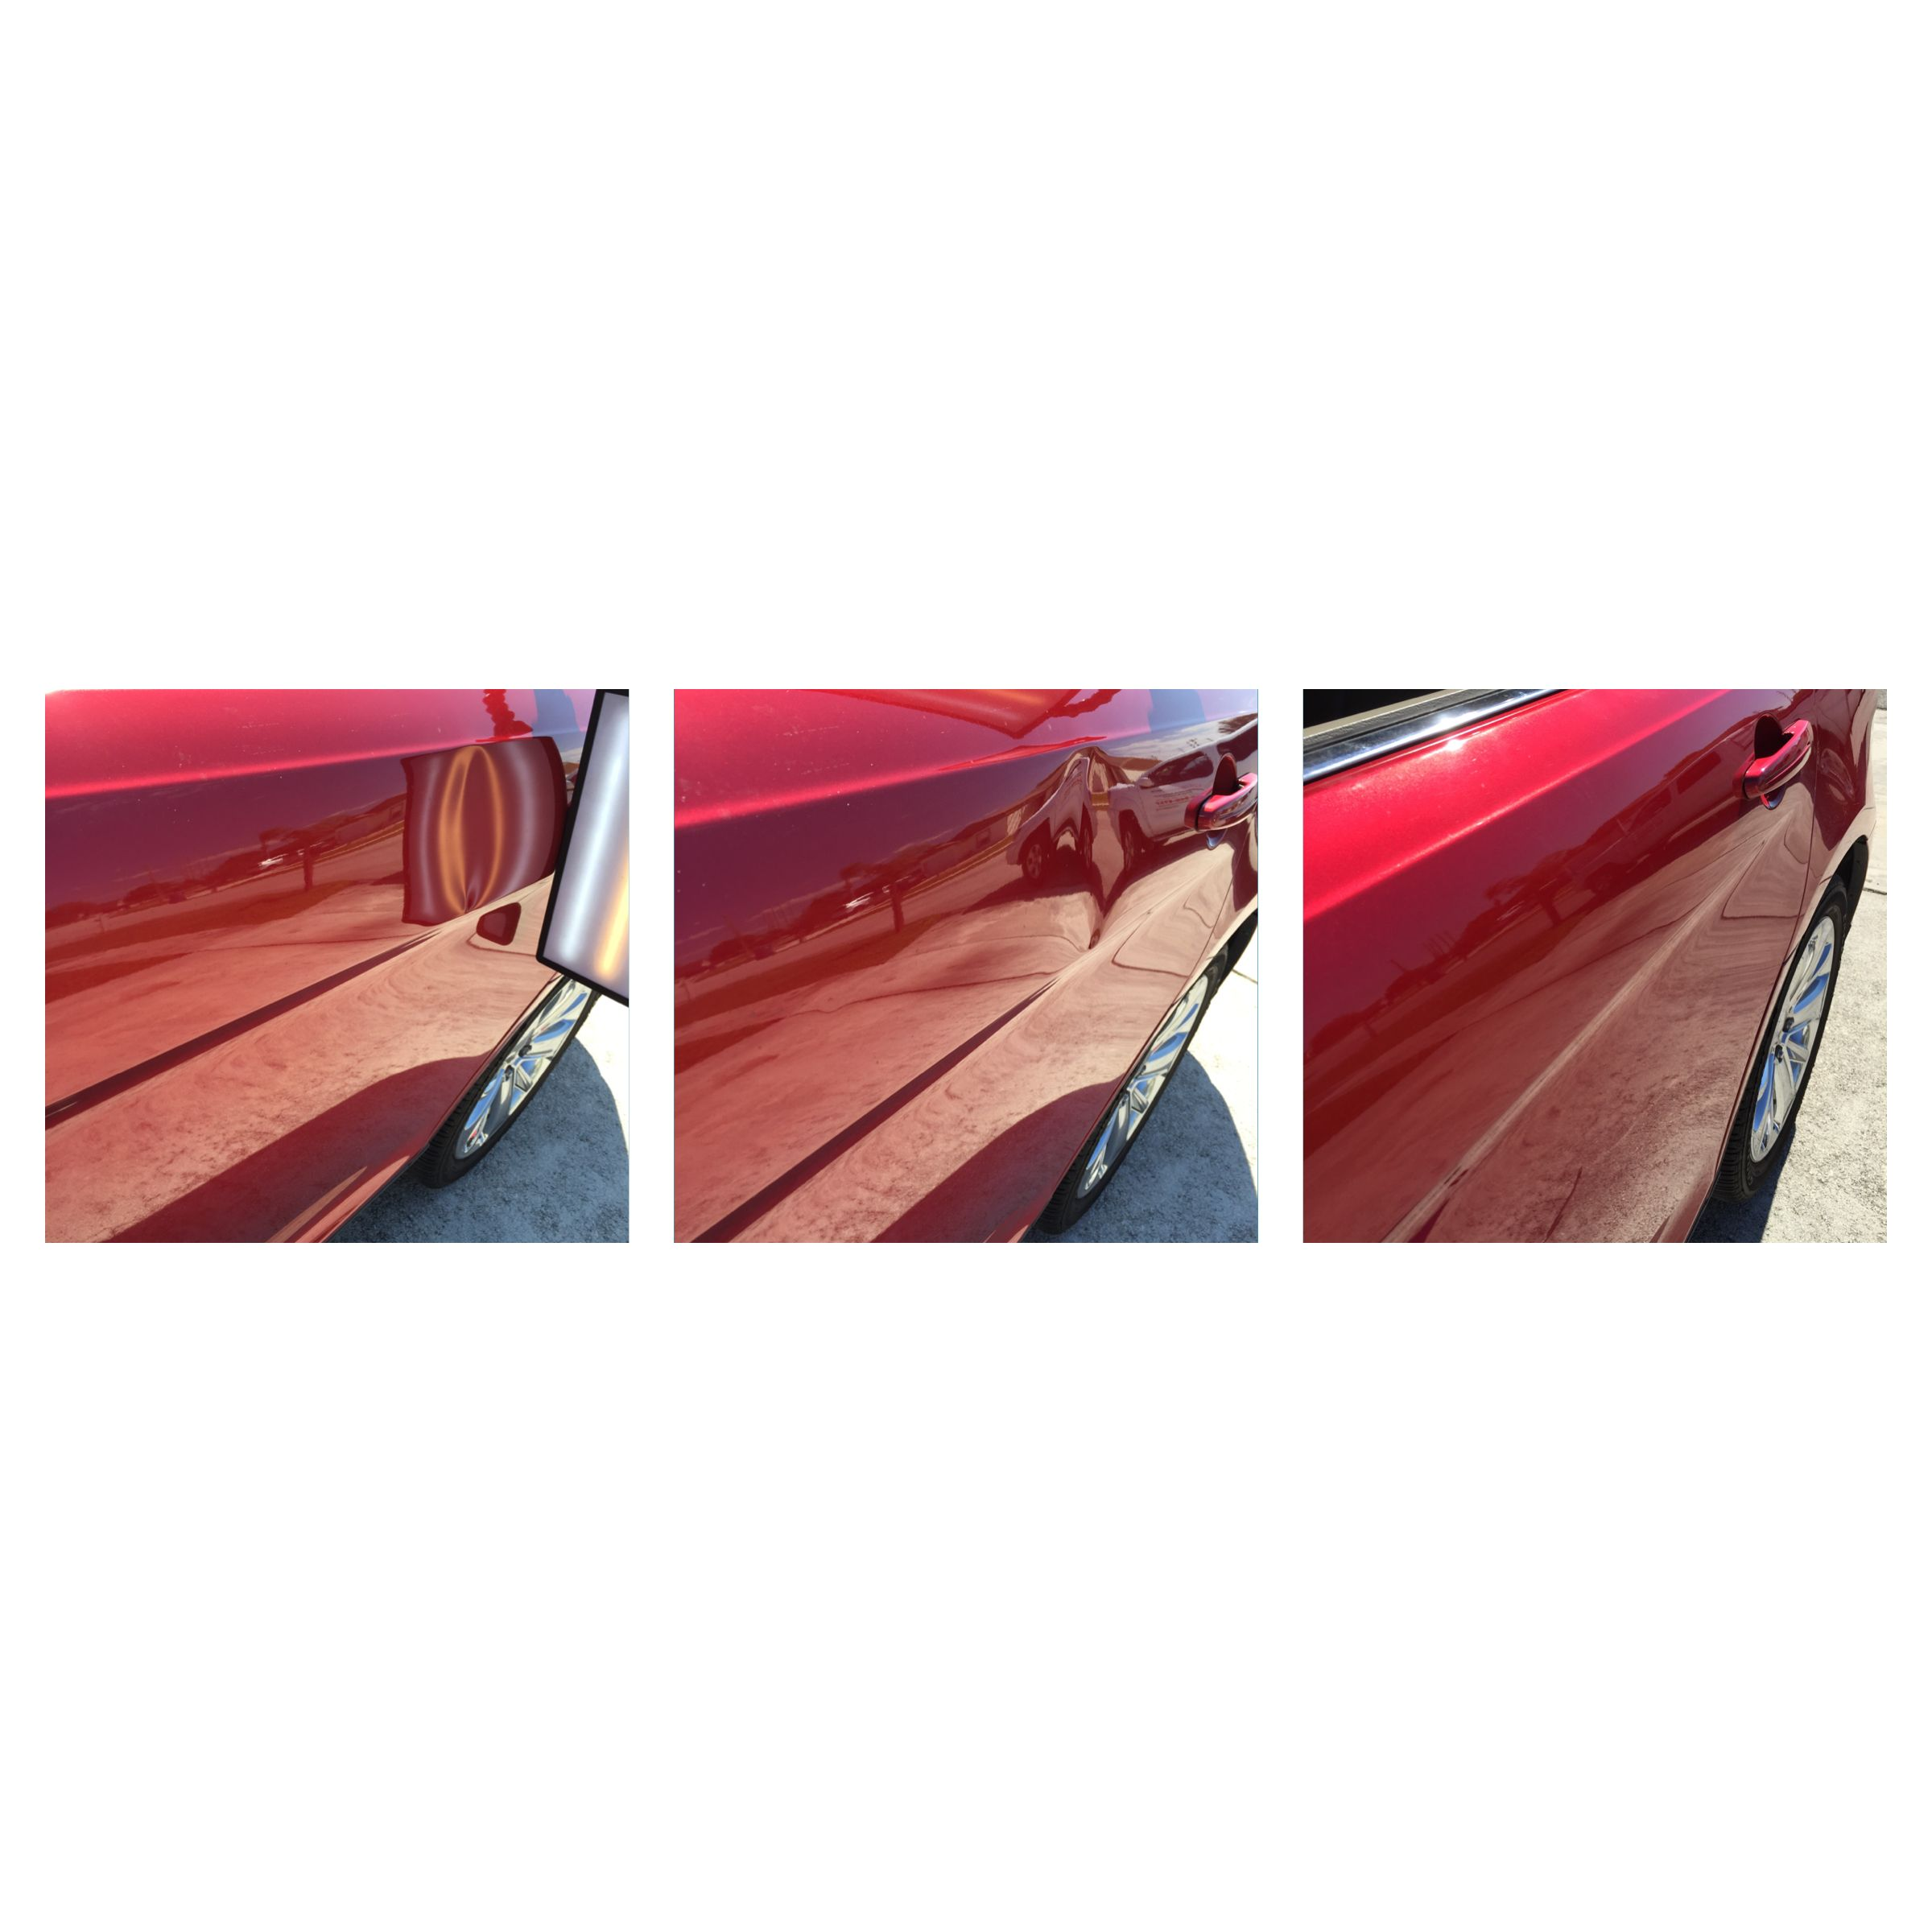 Ford Taurus Crease Dent Before Middle And After Removal Best Mobile Mobile Dent Repair Dent Repair